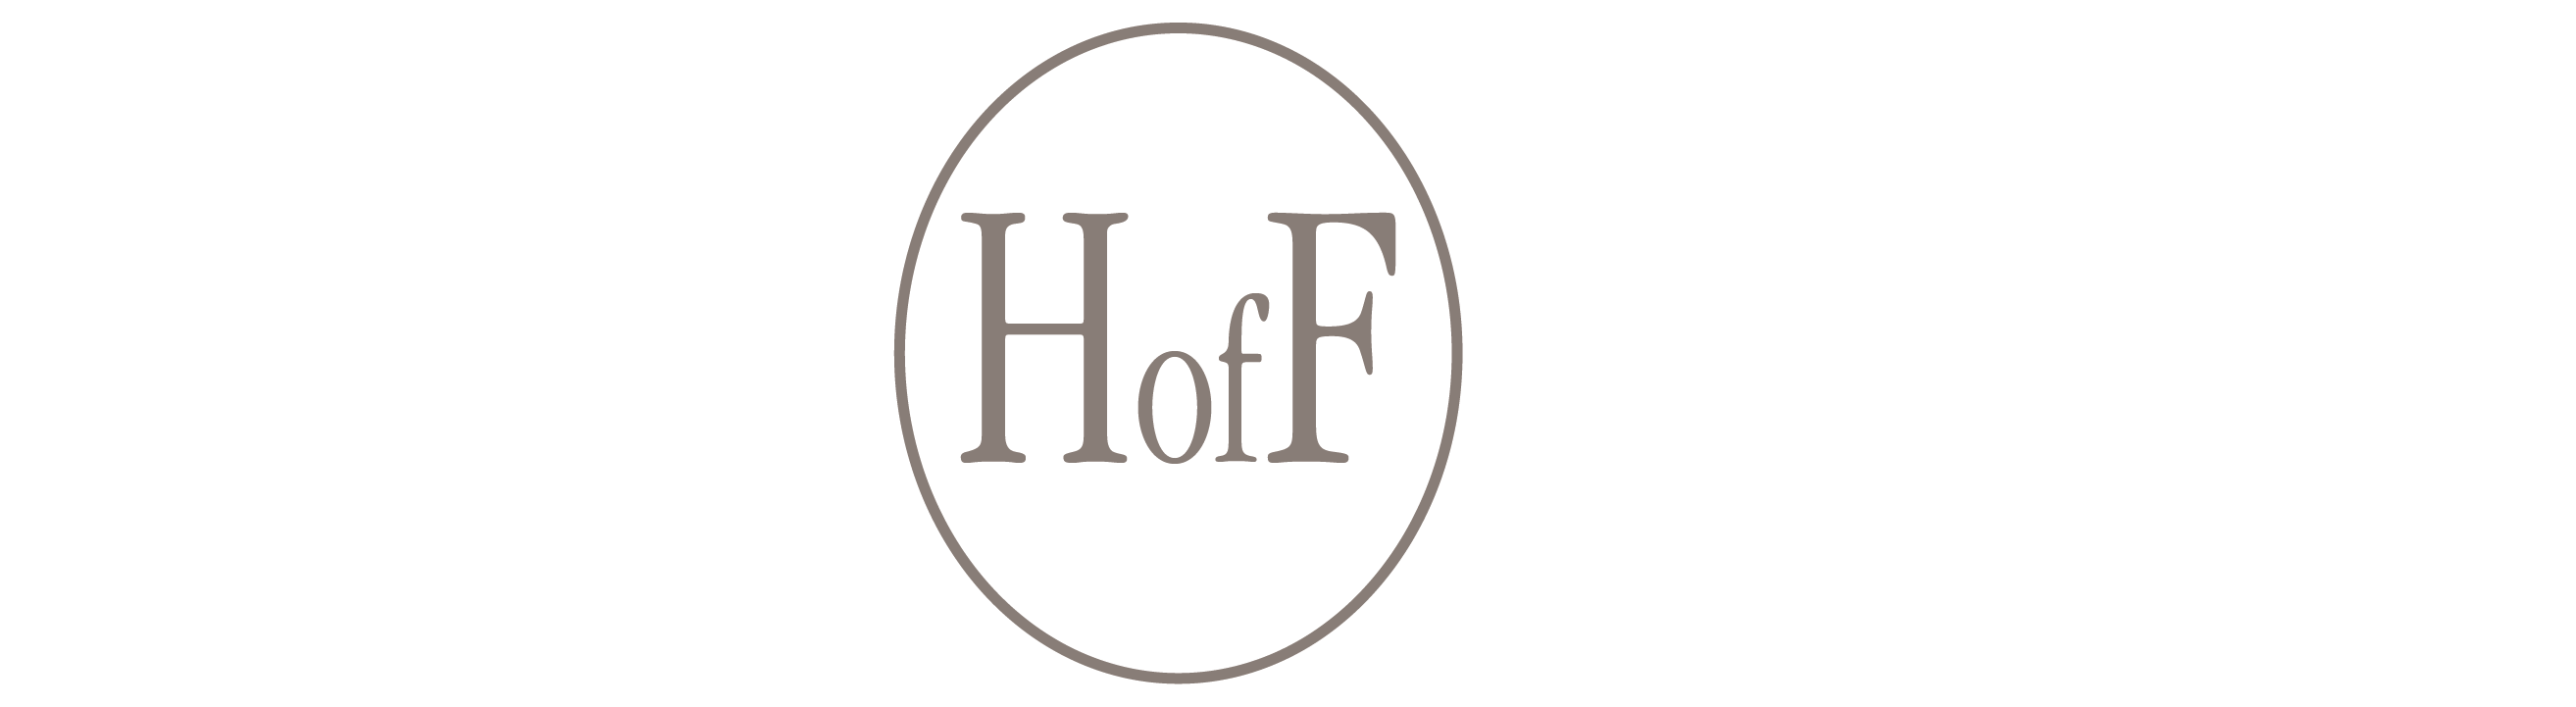 House of Flavours Logo Reverse